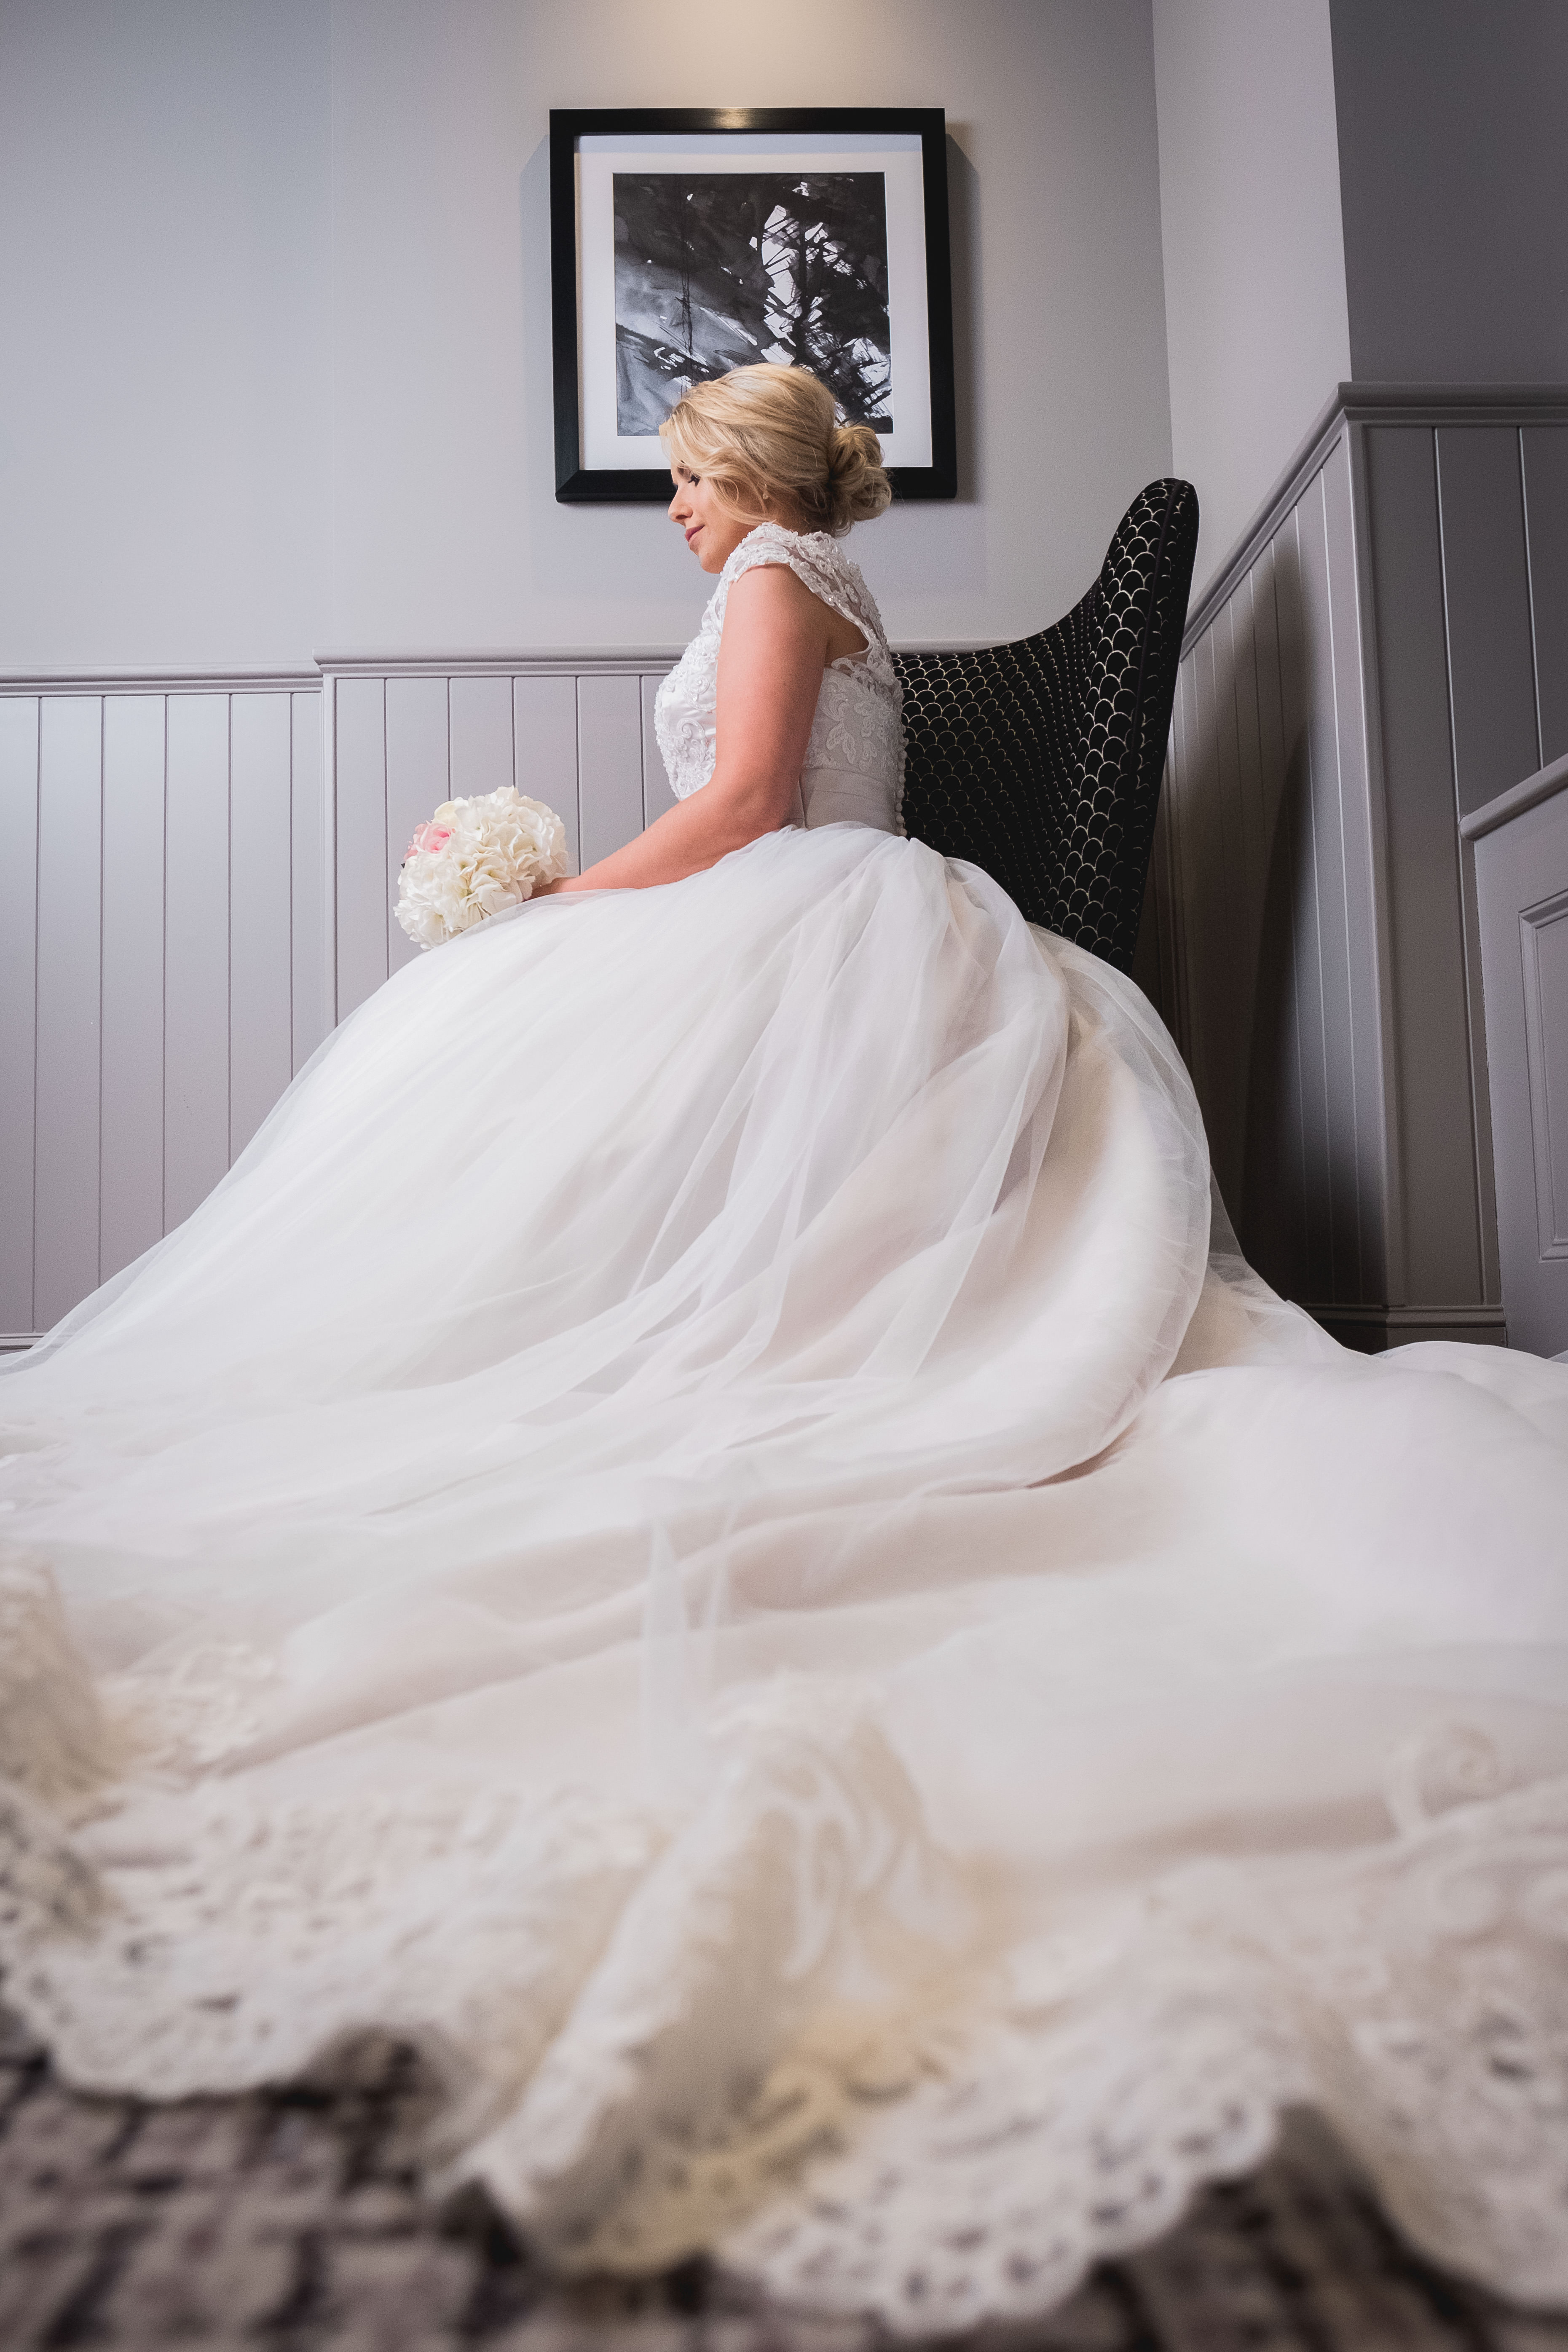 What is your wedding dress like?